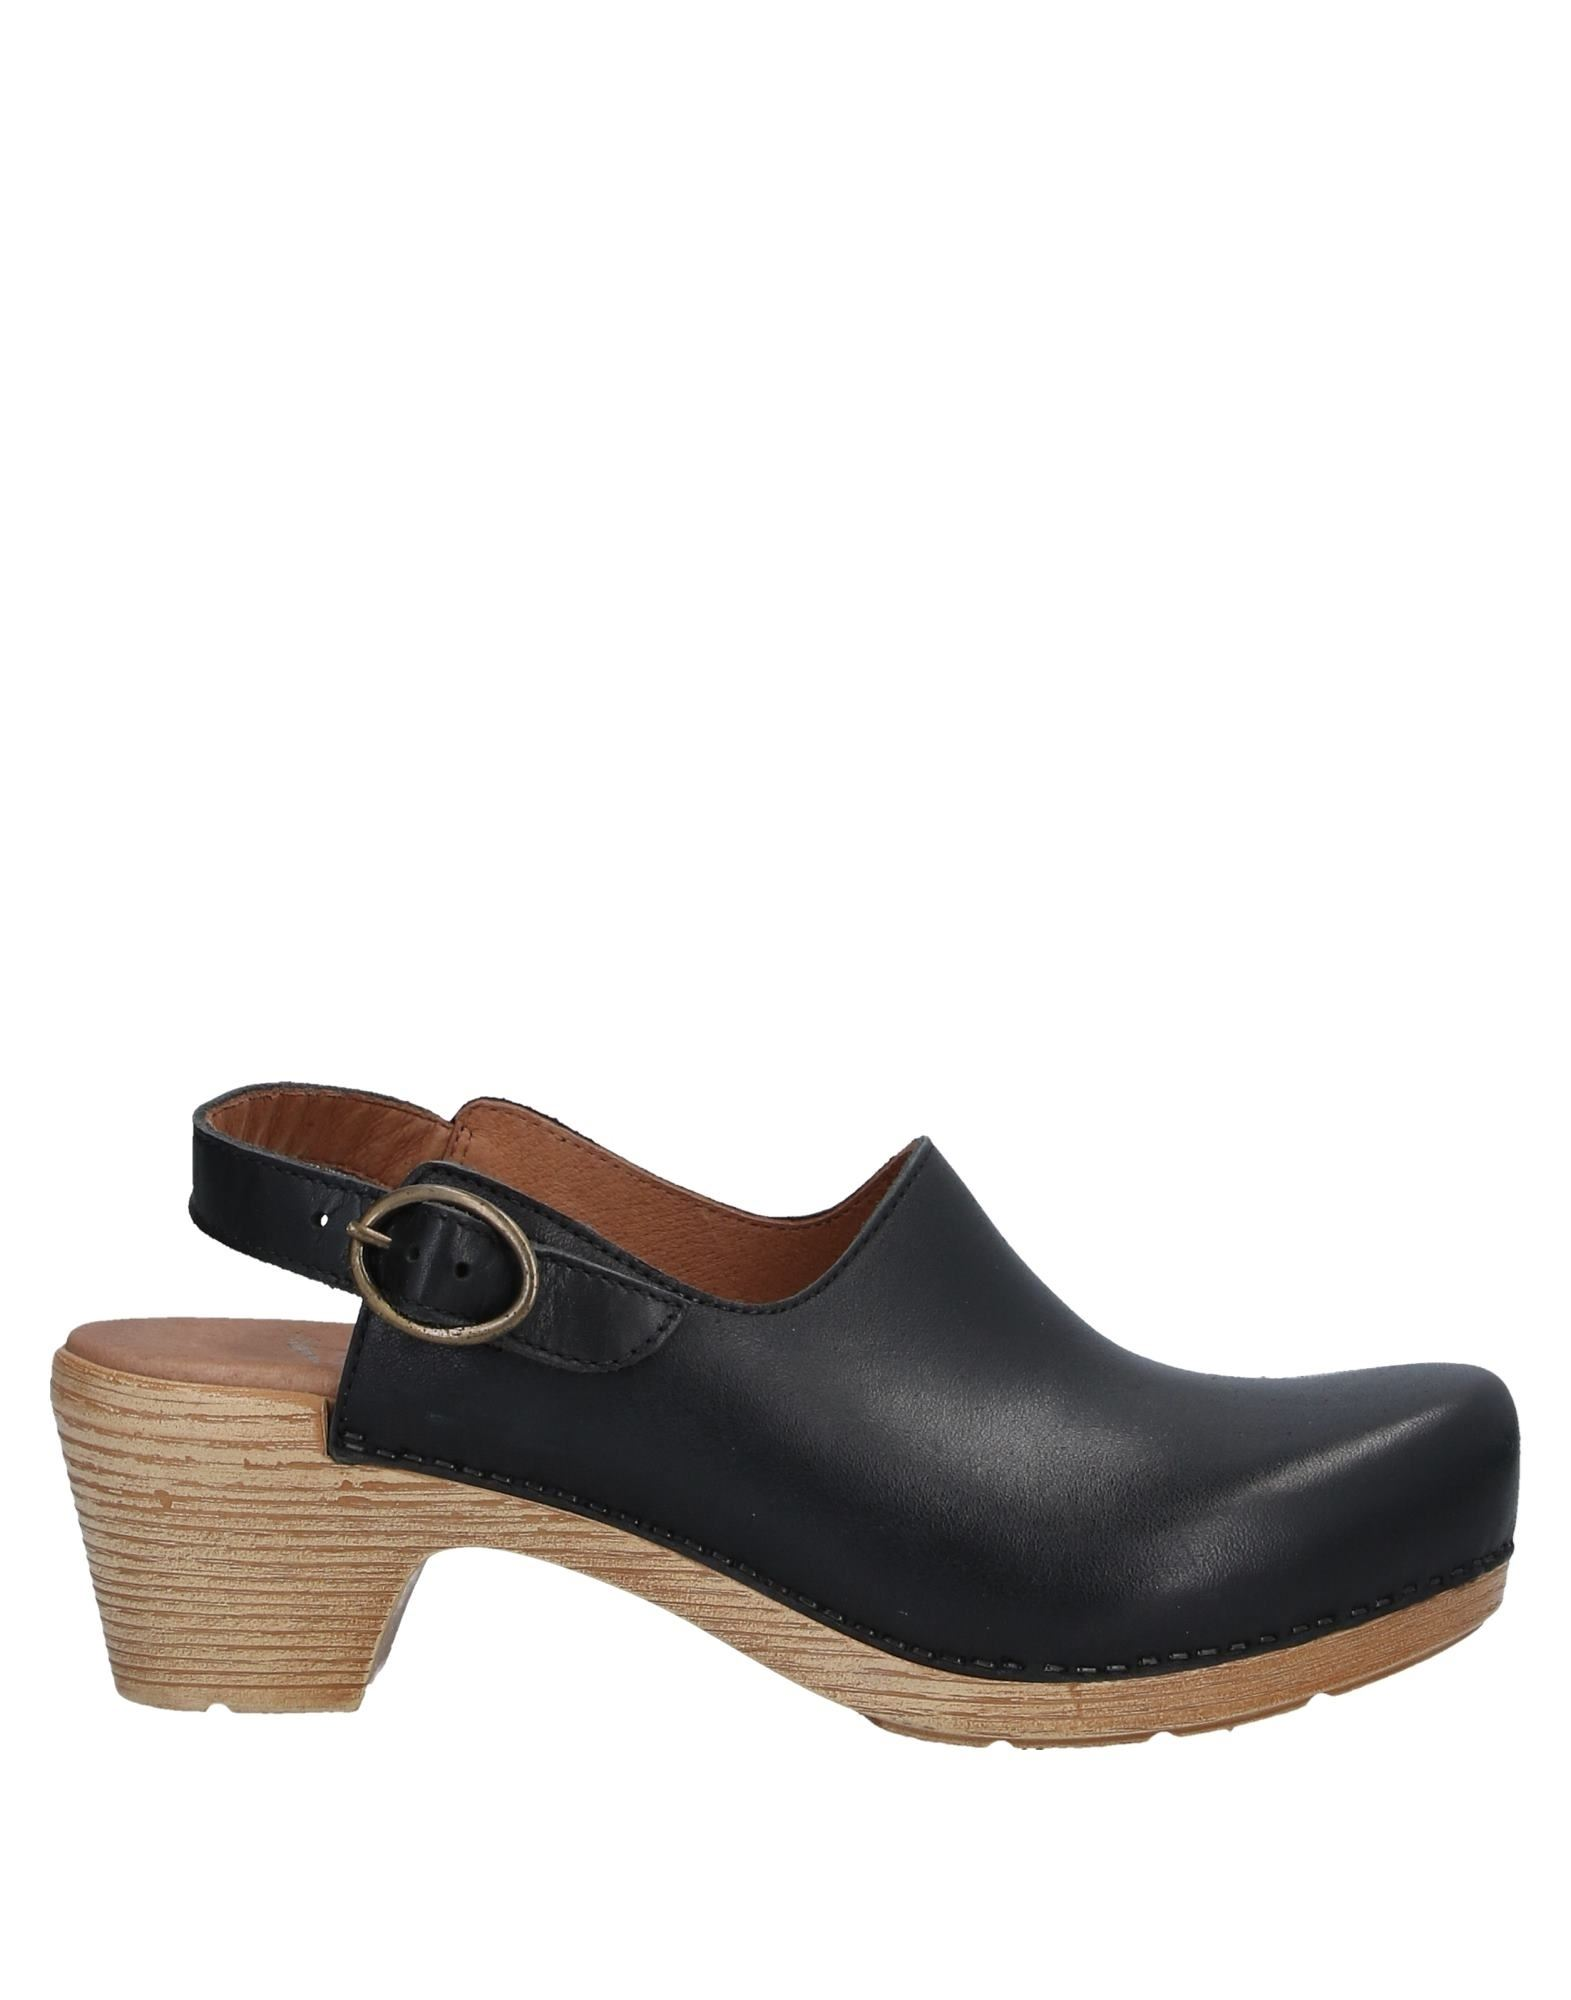 DANSKO Mules. leather, no appliqués, solid color, buckle fastening, round toeline, square heel, leather lining, rubber sole, contains non-textile parts of animal origin. Soft Leather